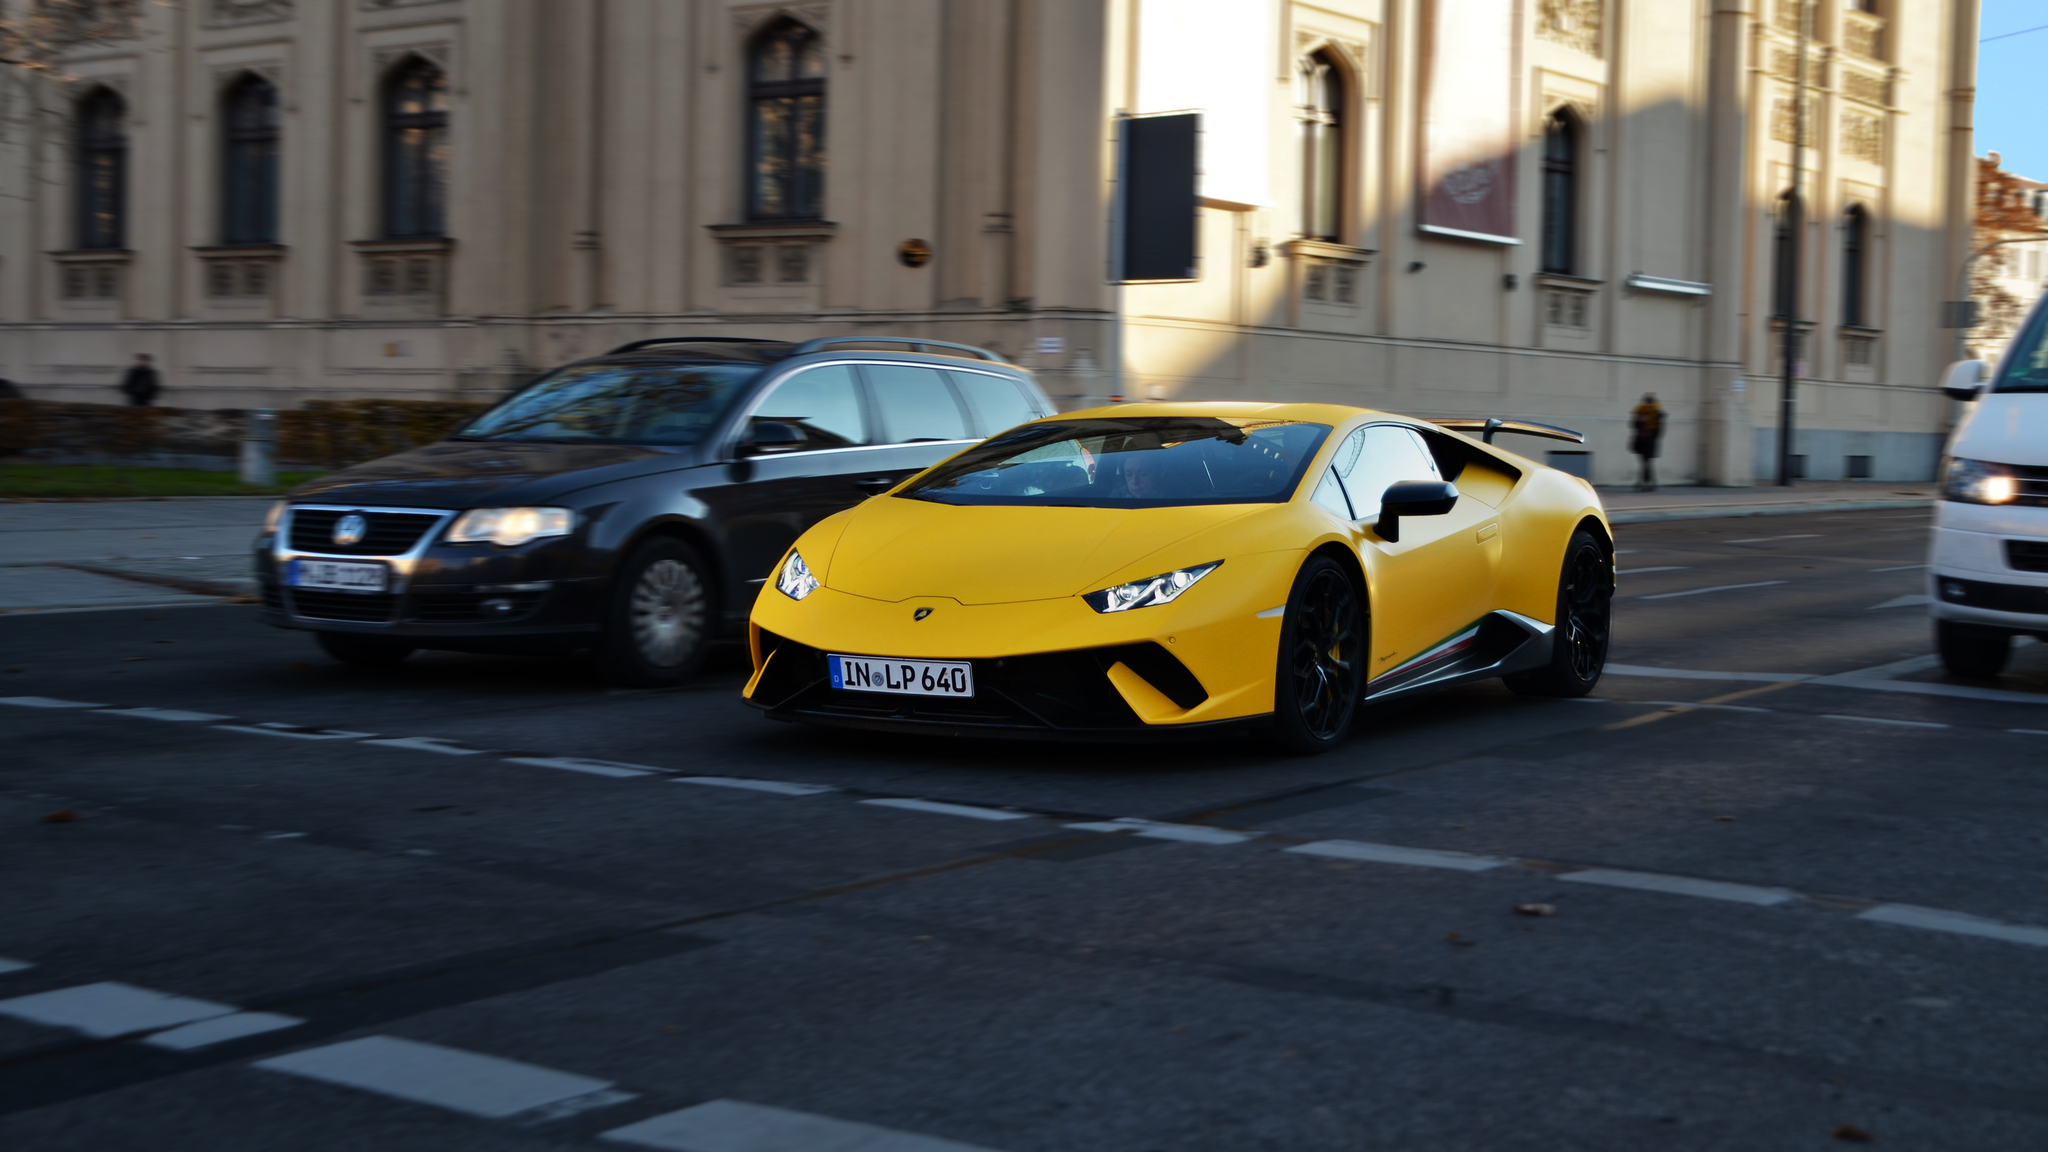 Lamborghini Huracan Performante - IN-LP-640